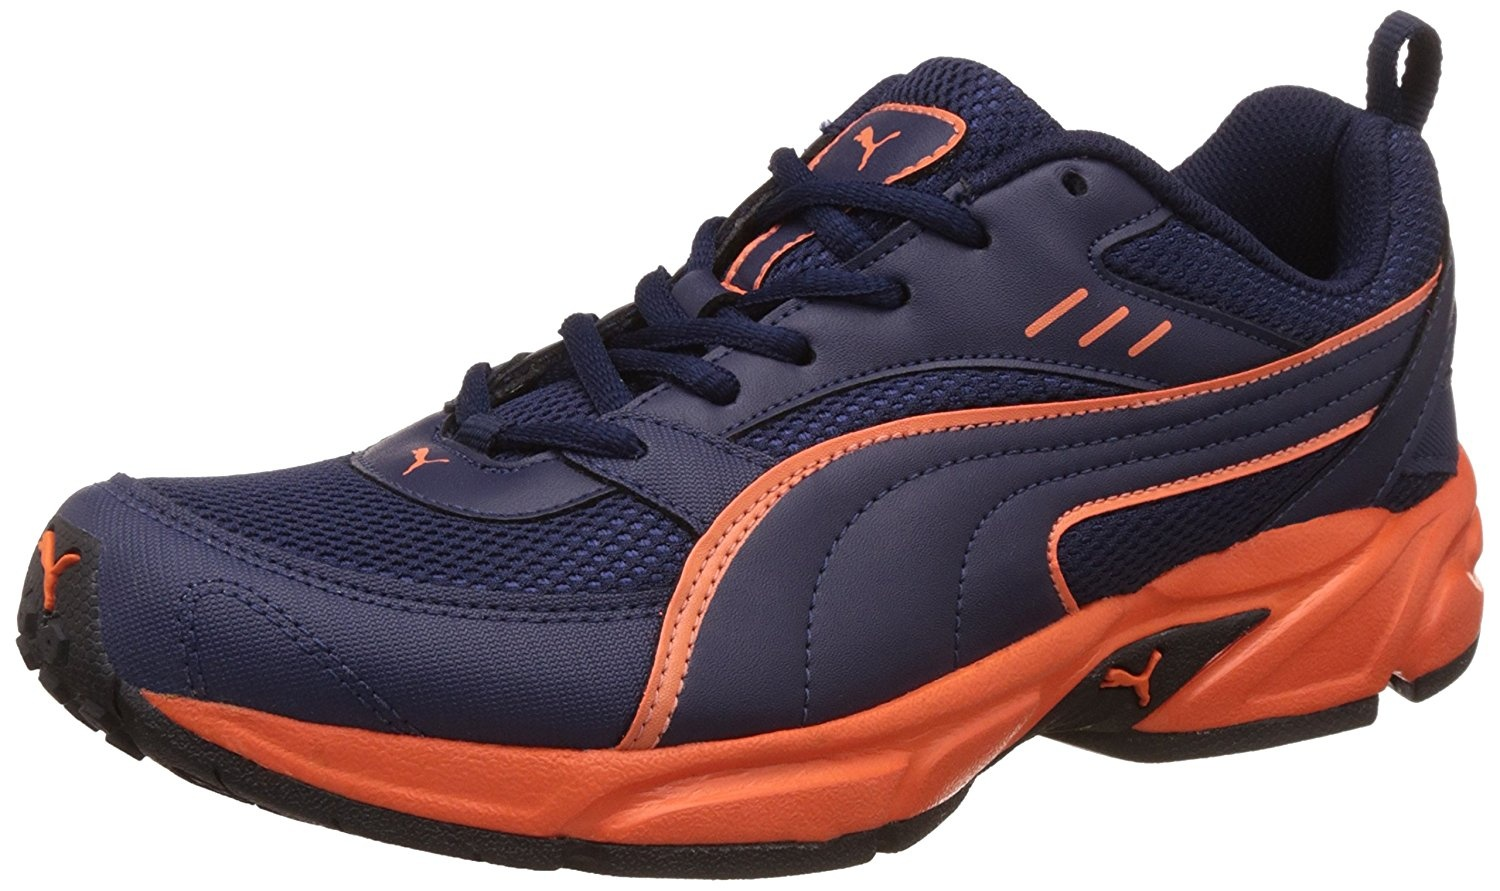 618c4924b34 The shoes are very light weight and with a good grip that helps a runner to  run for a longer duration.